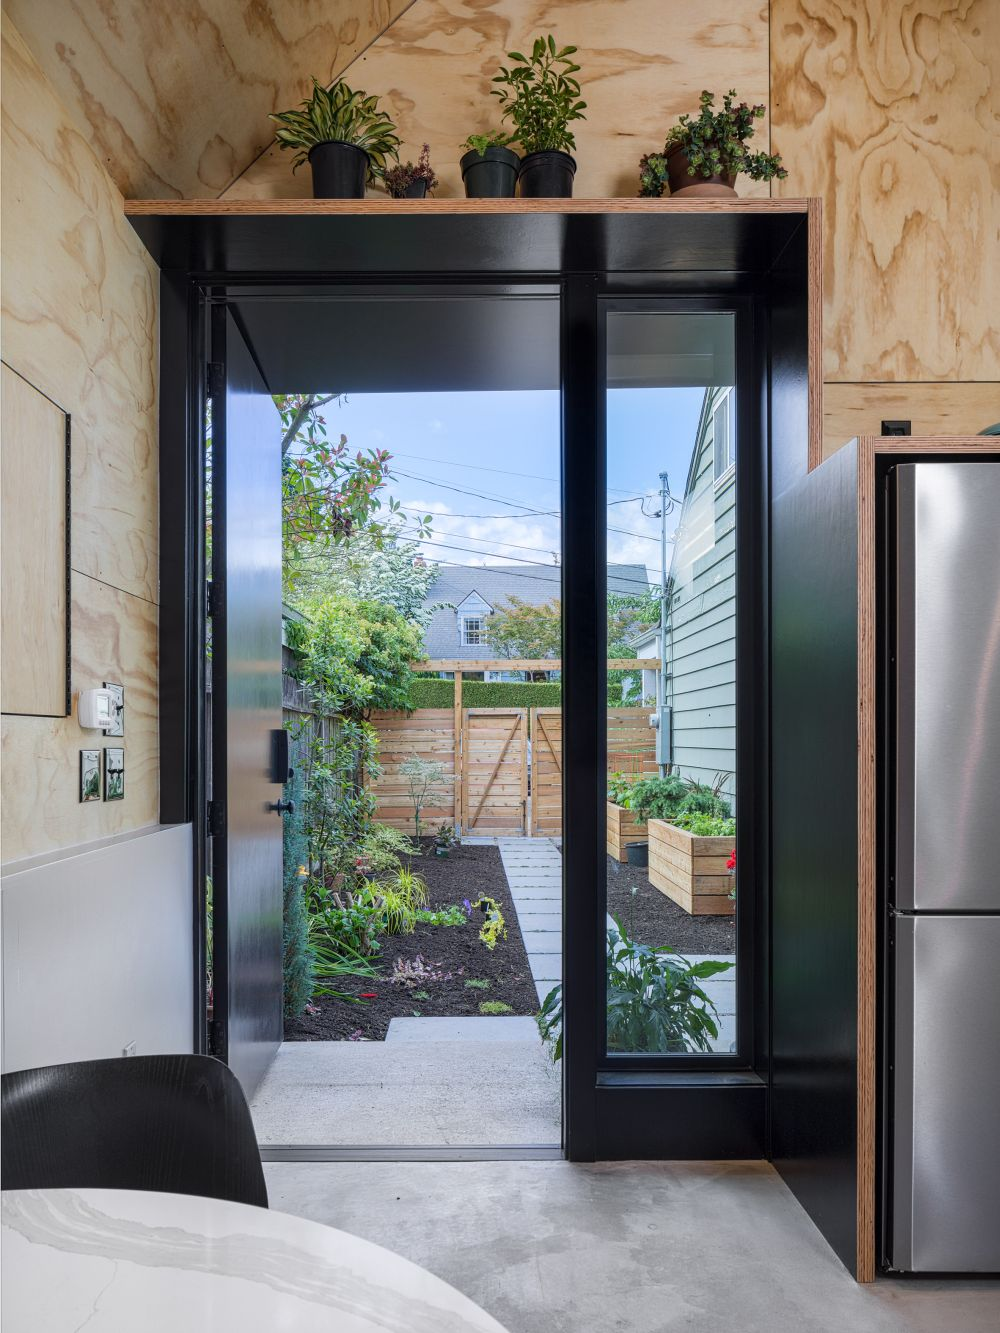 the front door offers easy access into the garden and the glass panel lets in additional sunlight